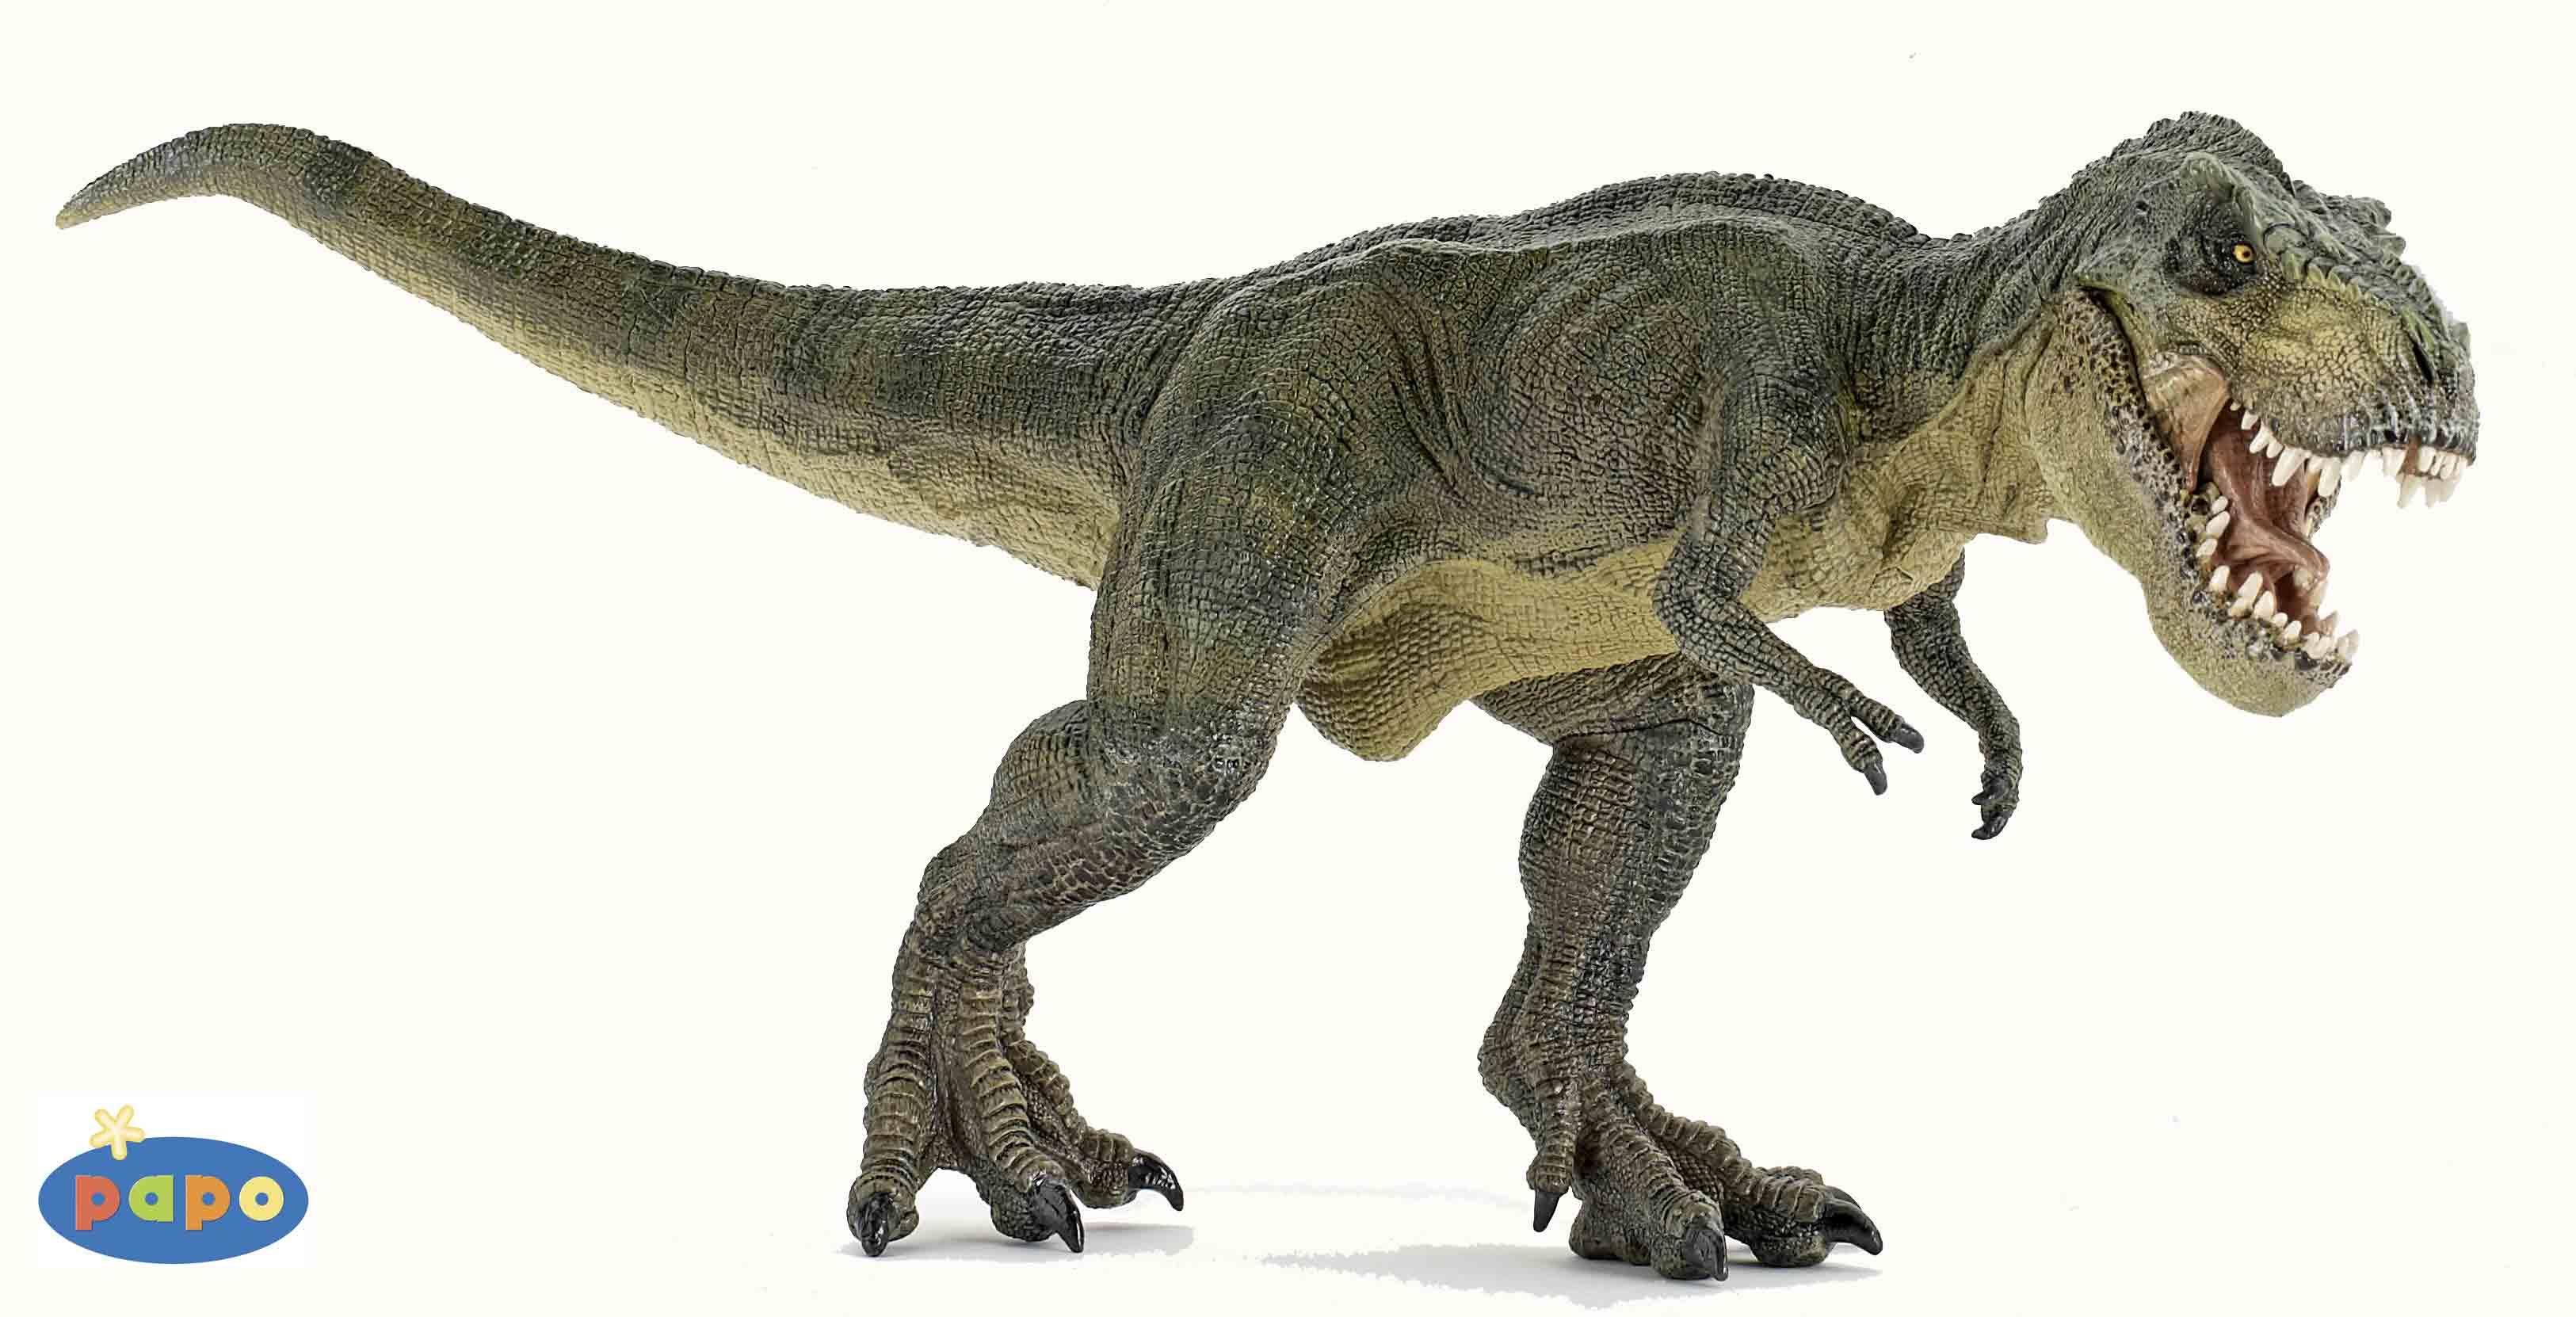 Dinosaurs Who Lived Millions Years Ago 300.04 Kb